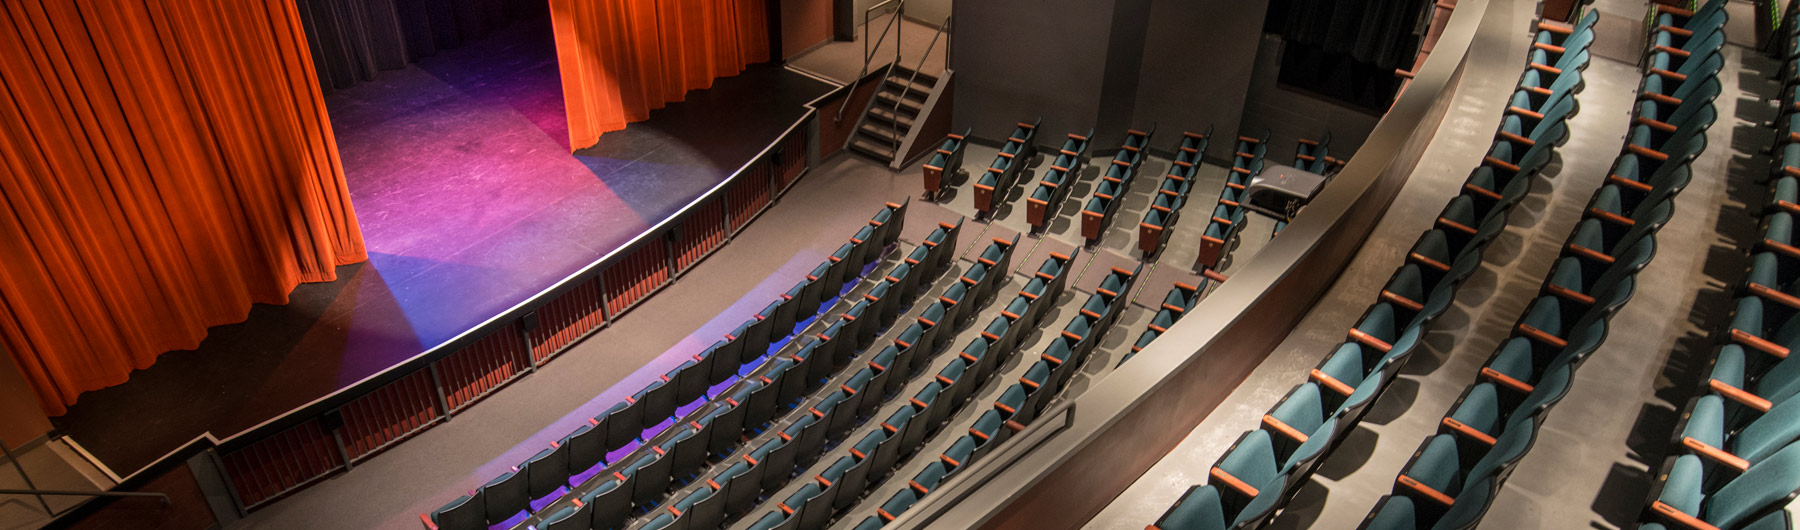 image of theatre from balcony and all of the 401 seats facing a stage with red curtains which are drawn back